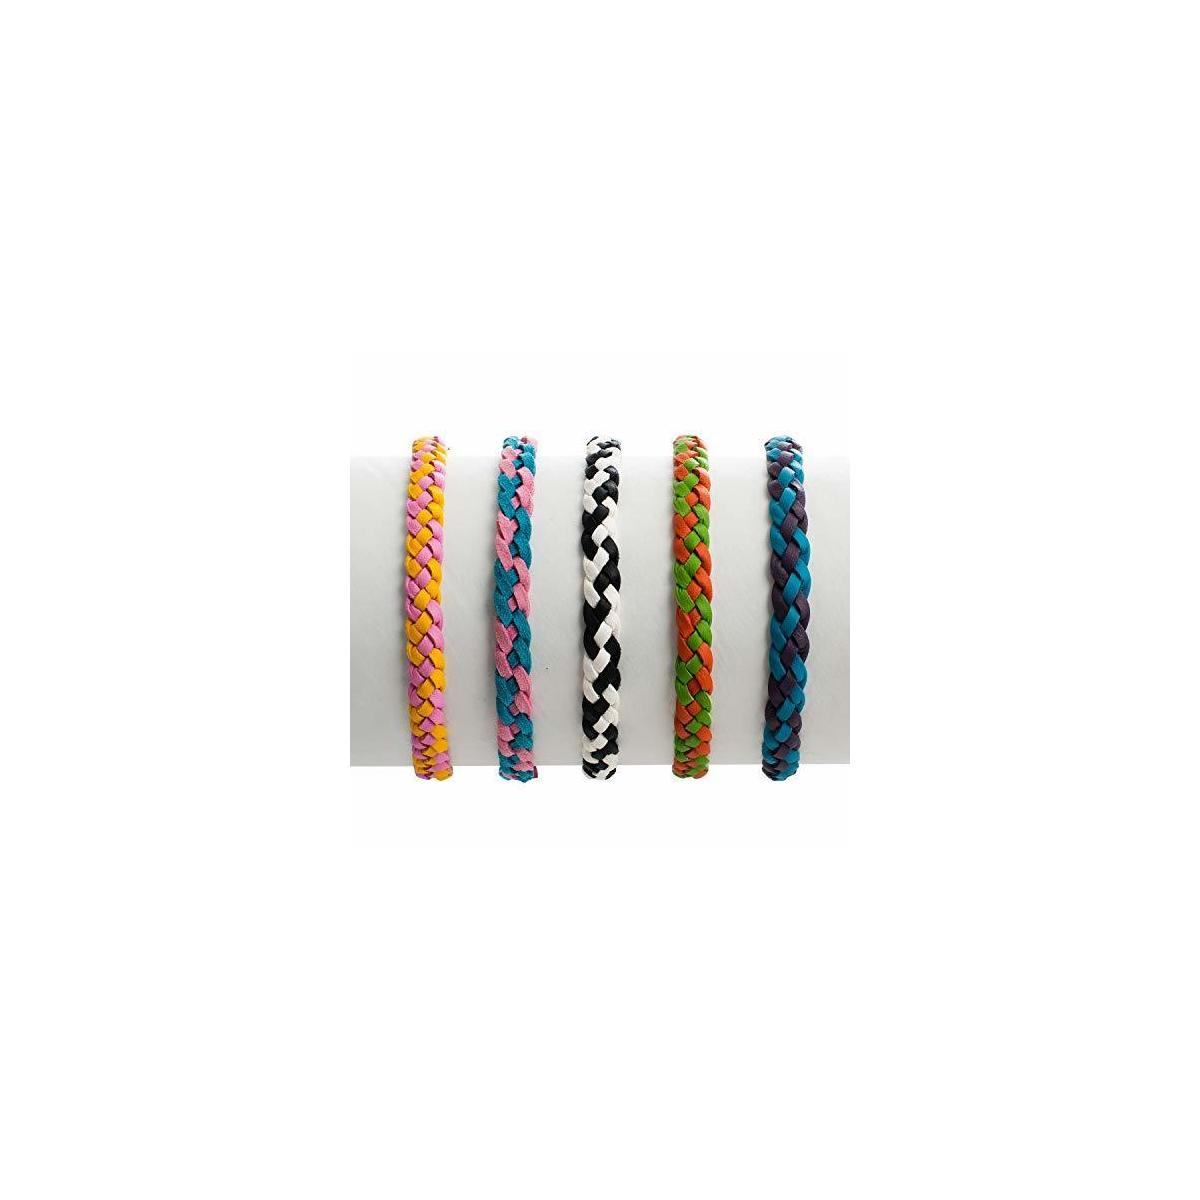 Nature's Hangout Leather Braided Mosquito Repellent Bracelet